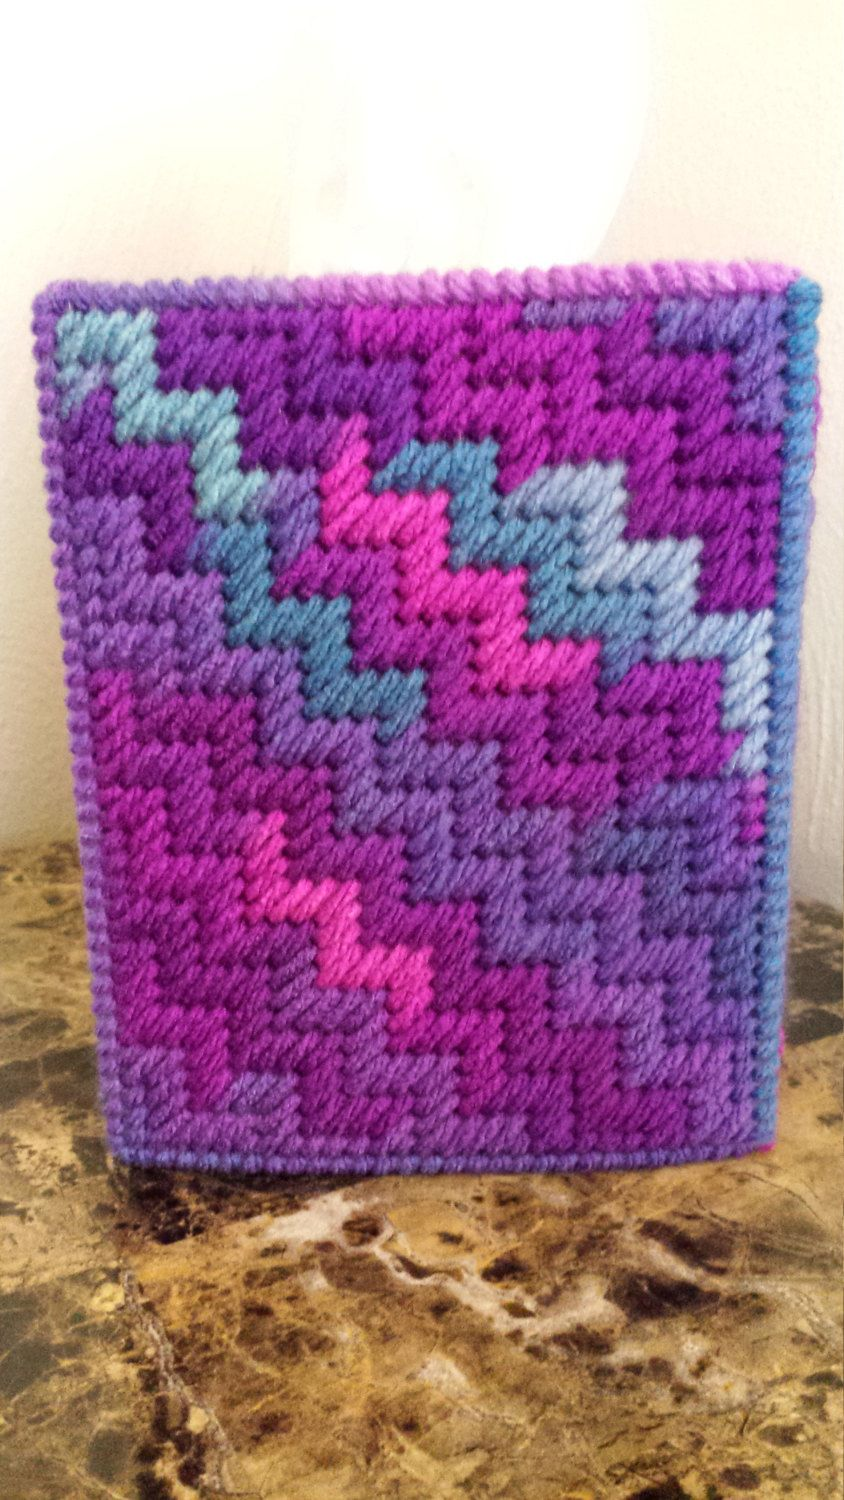 Grape Fizz ZigZag Tissue Box Cover by CatScratchCrafts on Etsy https://www.etsy.com/listing/262594744/grape-fizz-zigzag-tissue-box-cover